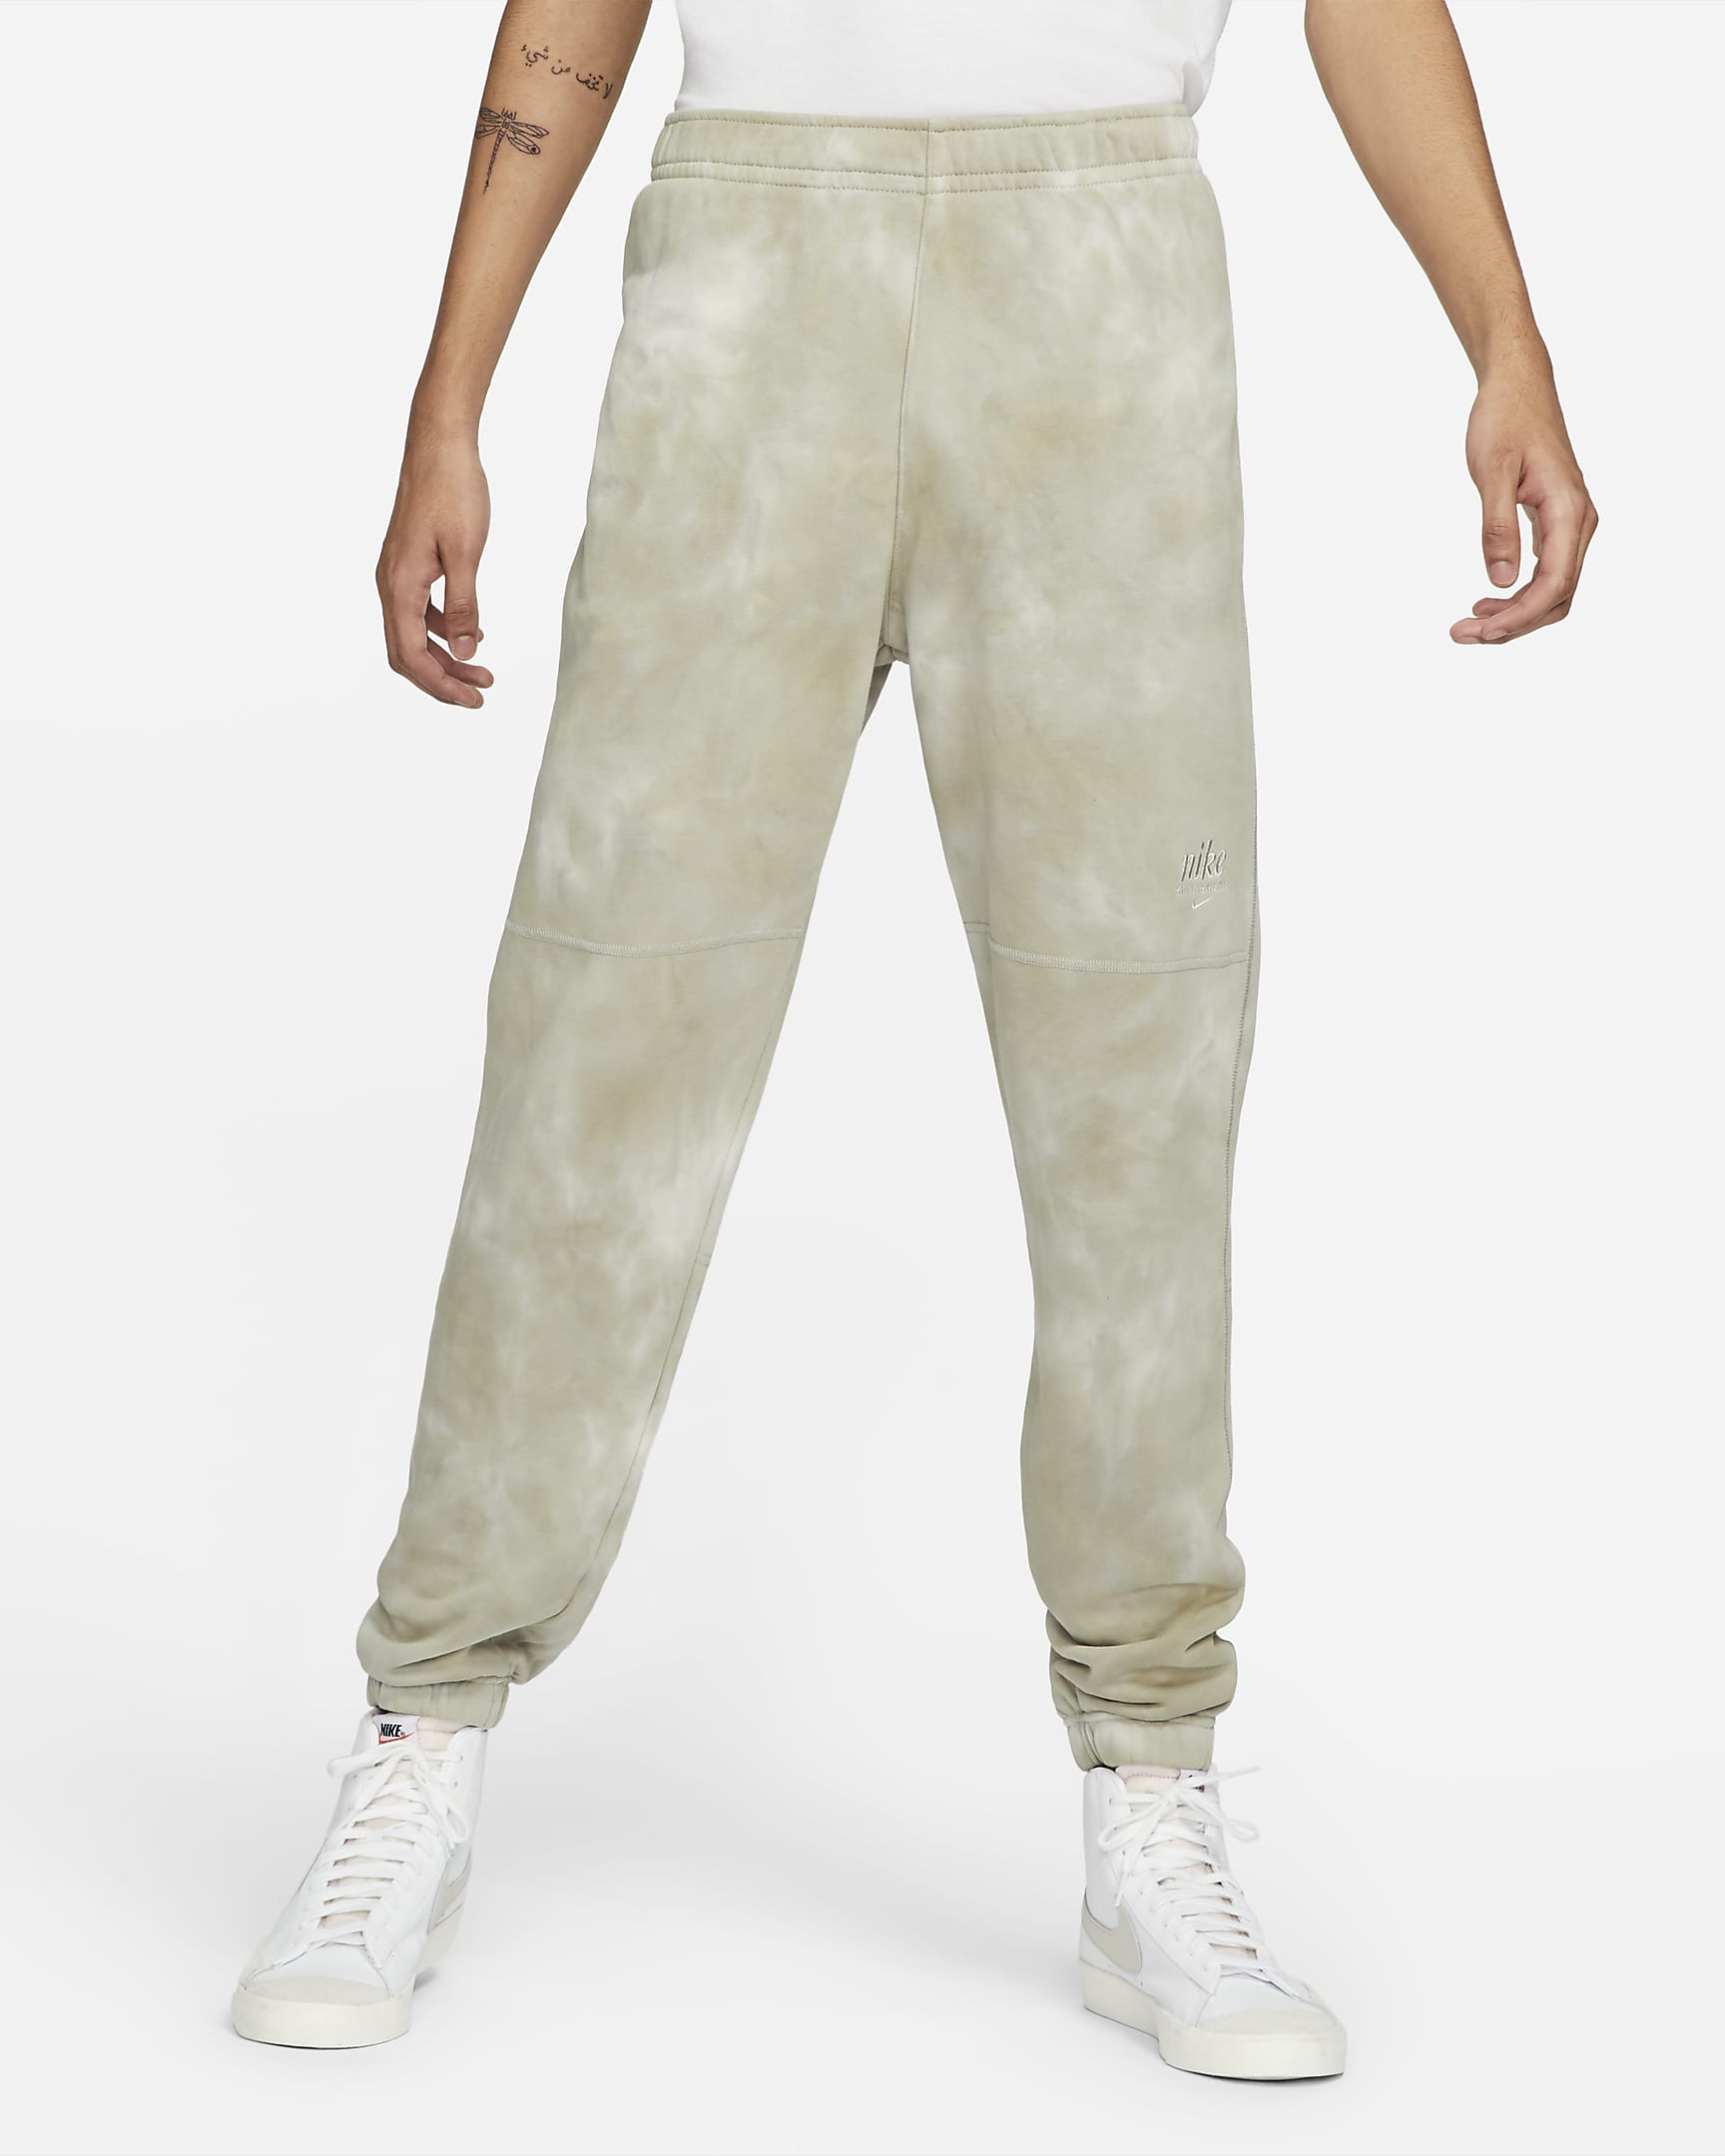 sportswear-club-mens-tie-dye-french-terry-pants-vtHSjr